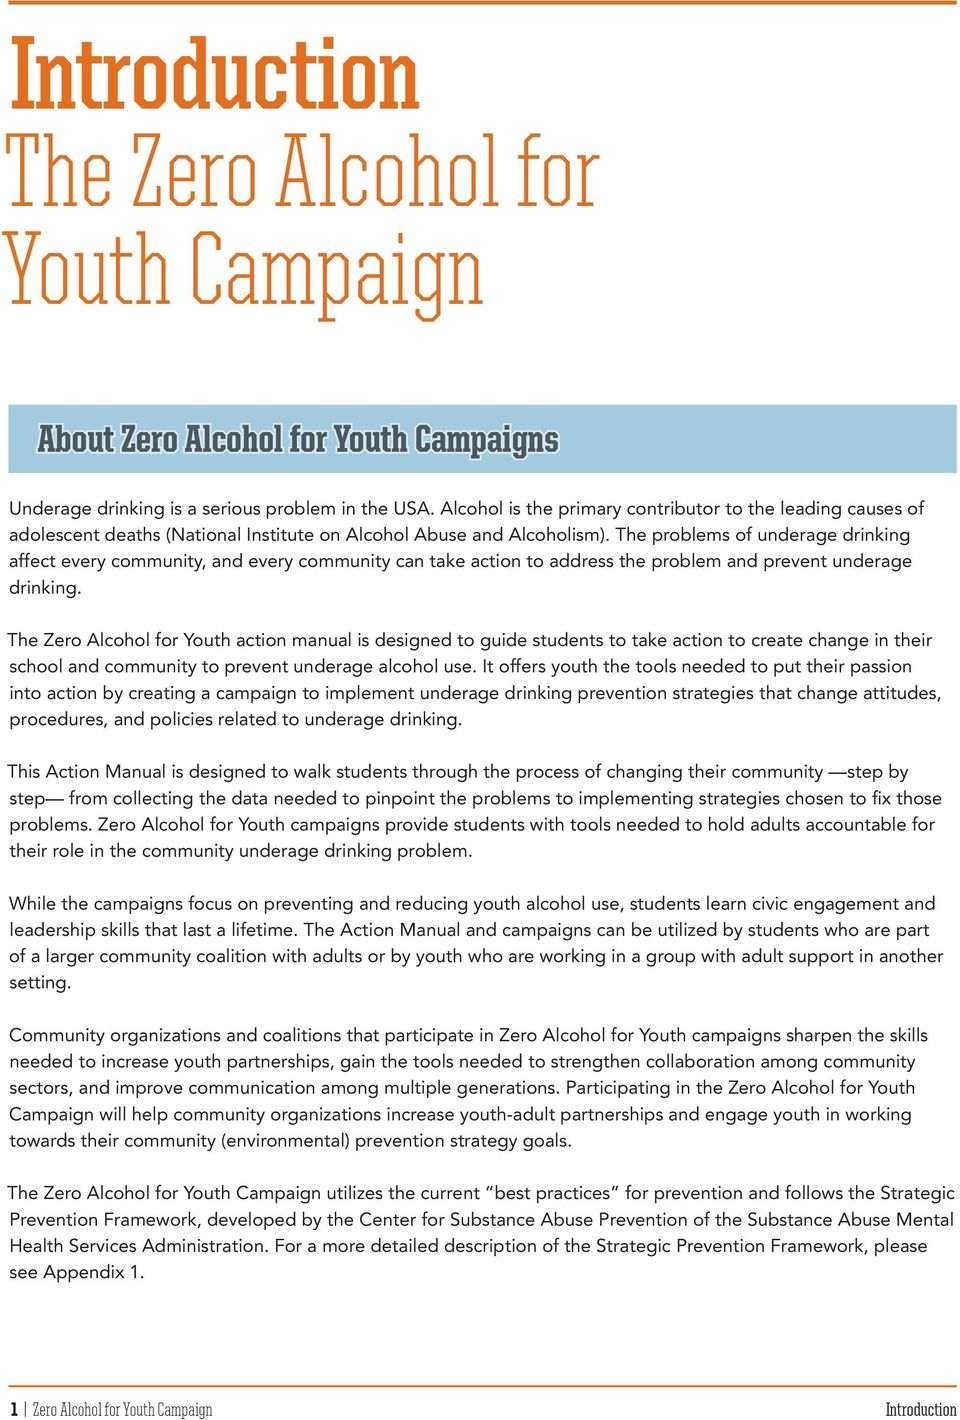 The problems of underage drinking affect every community, and every community can take action to address the problem and prevent underage drinking.